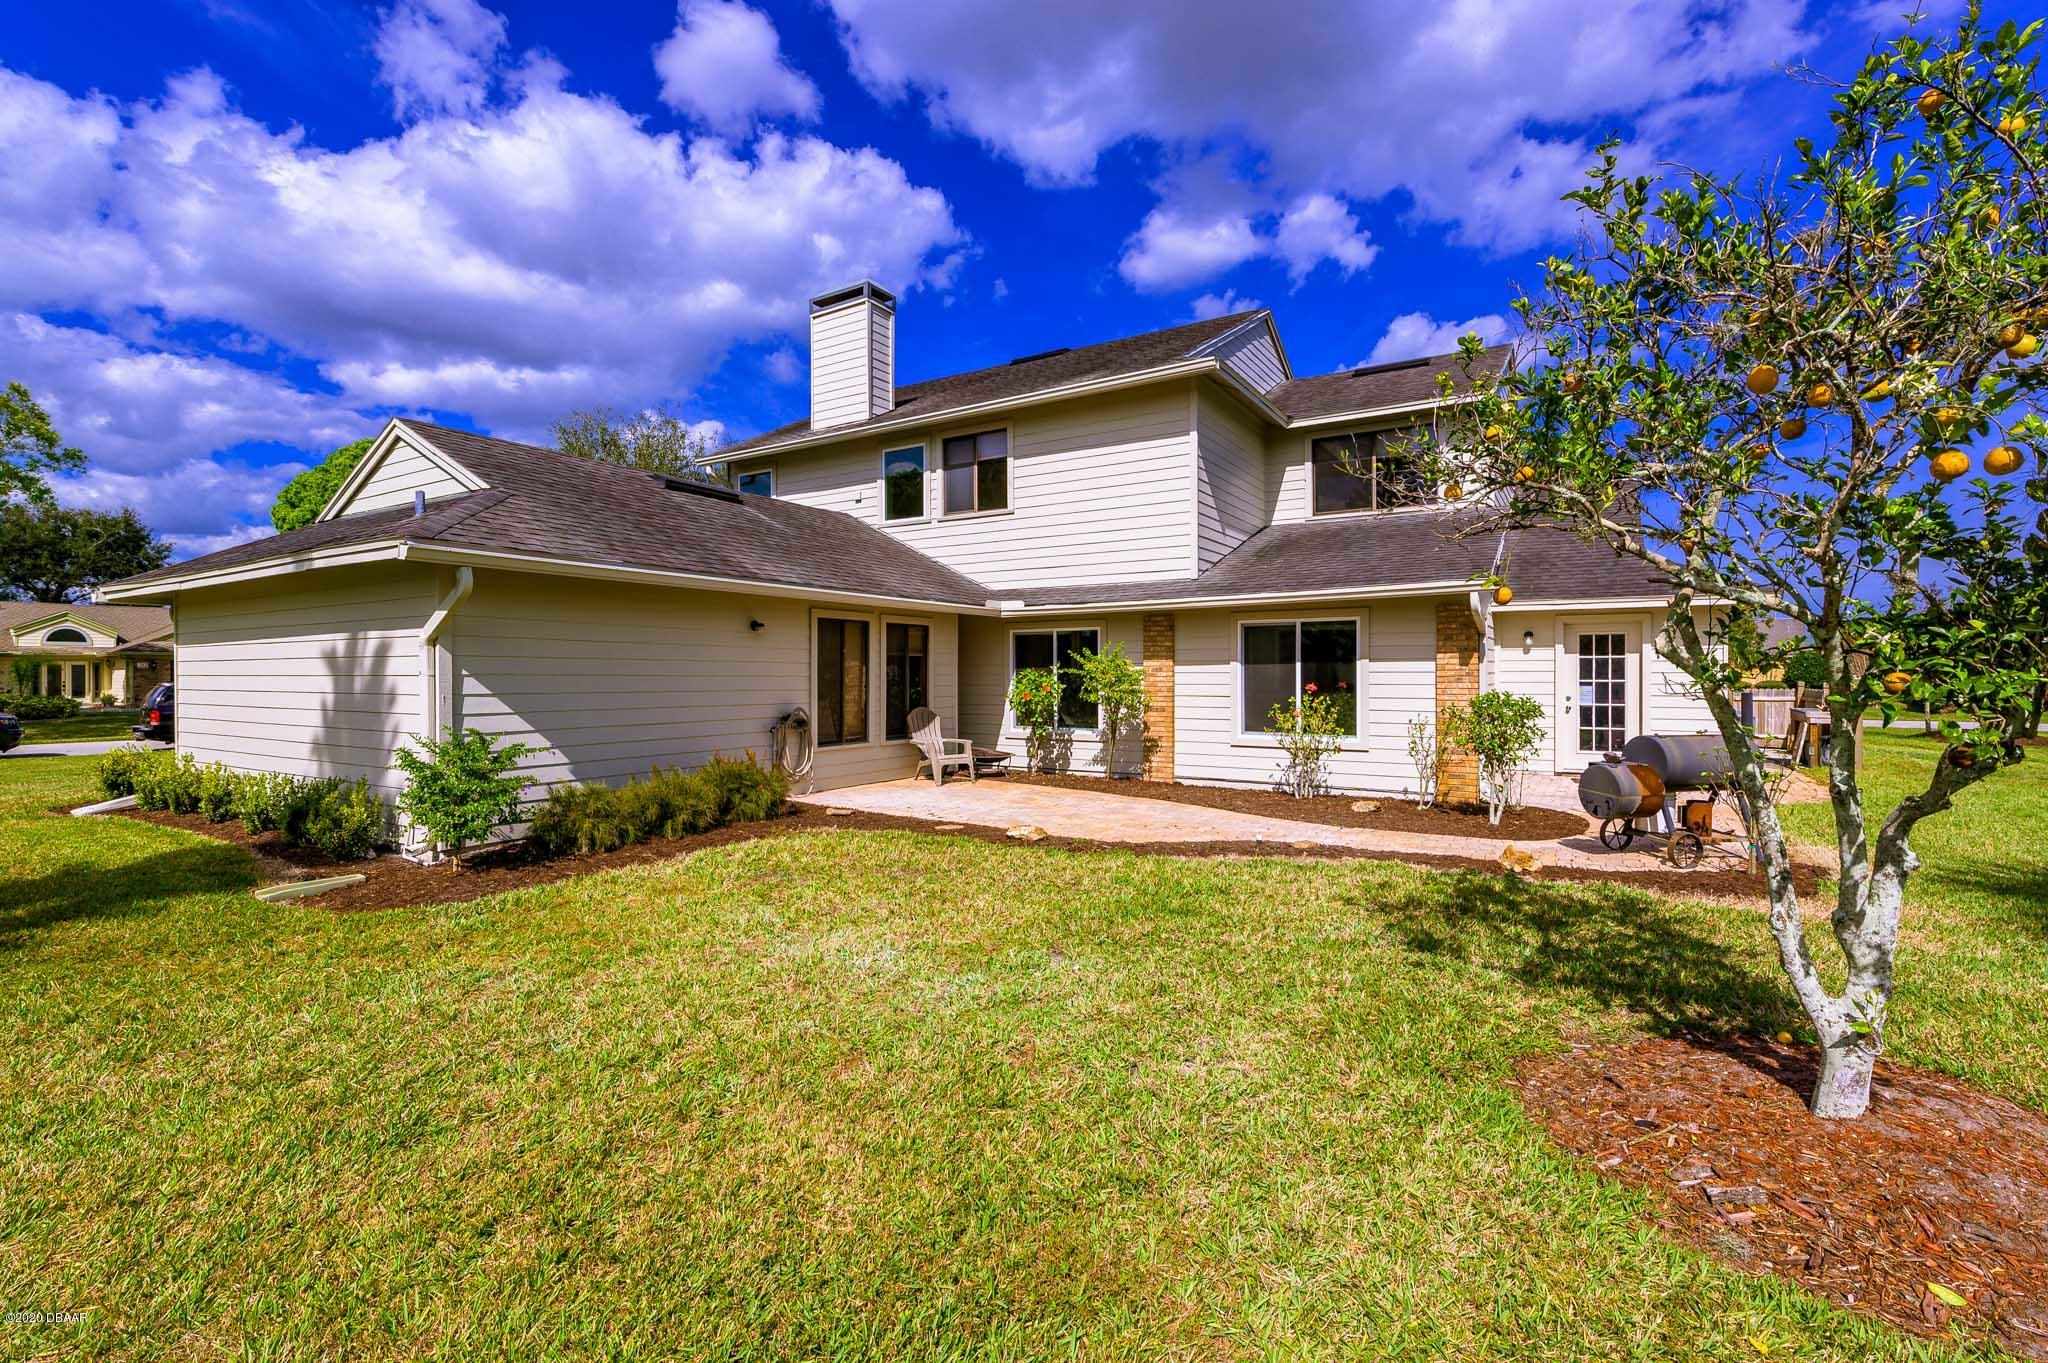 147 Green Heron Daytona Beach - 5